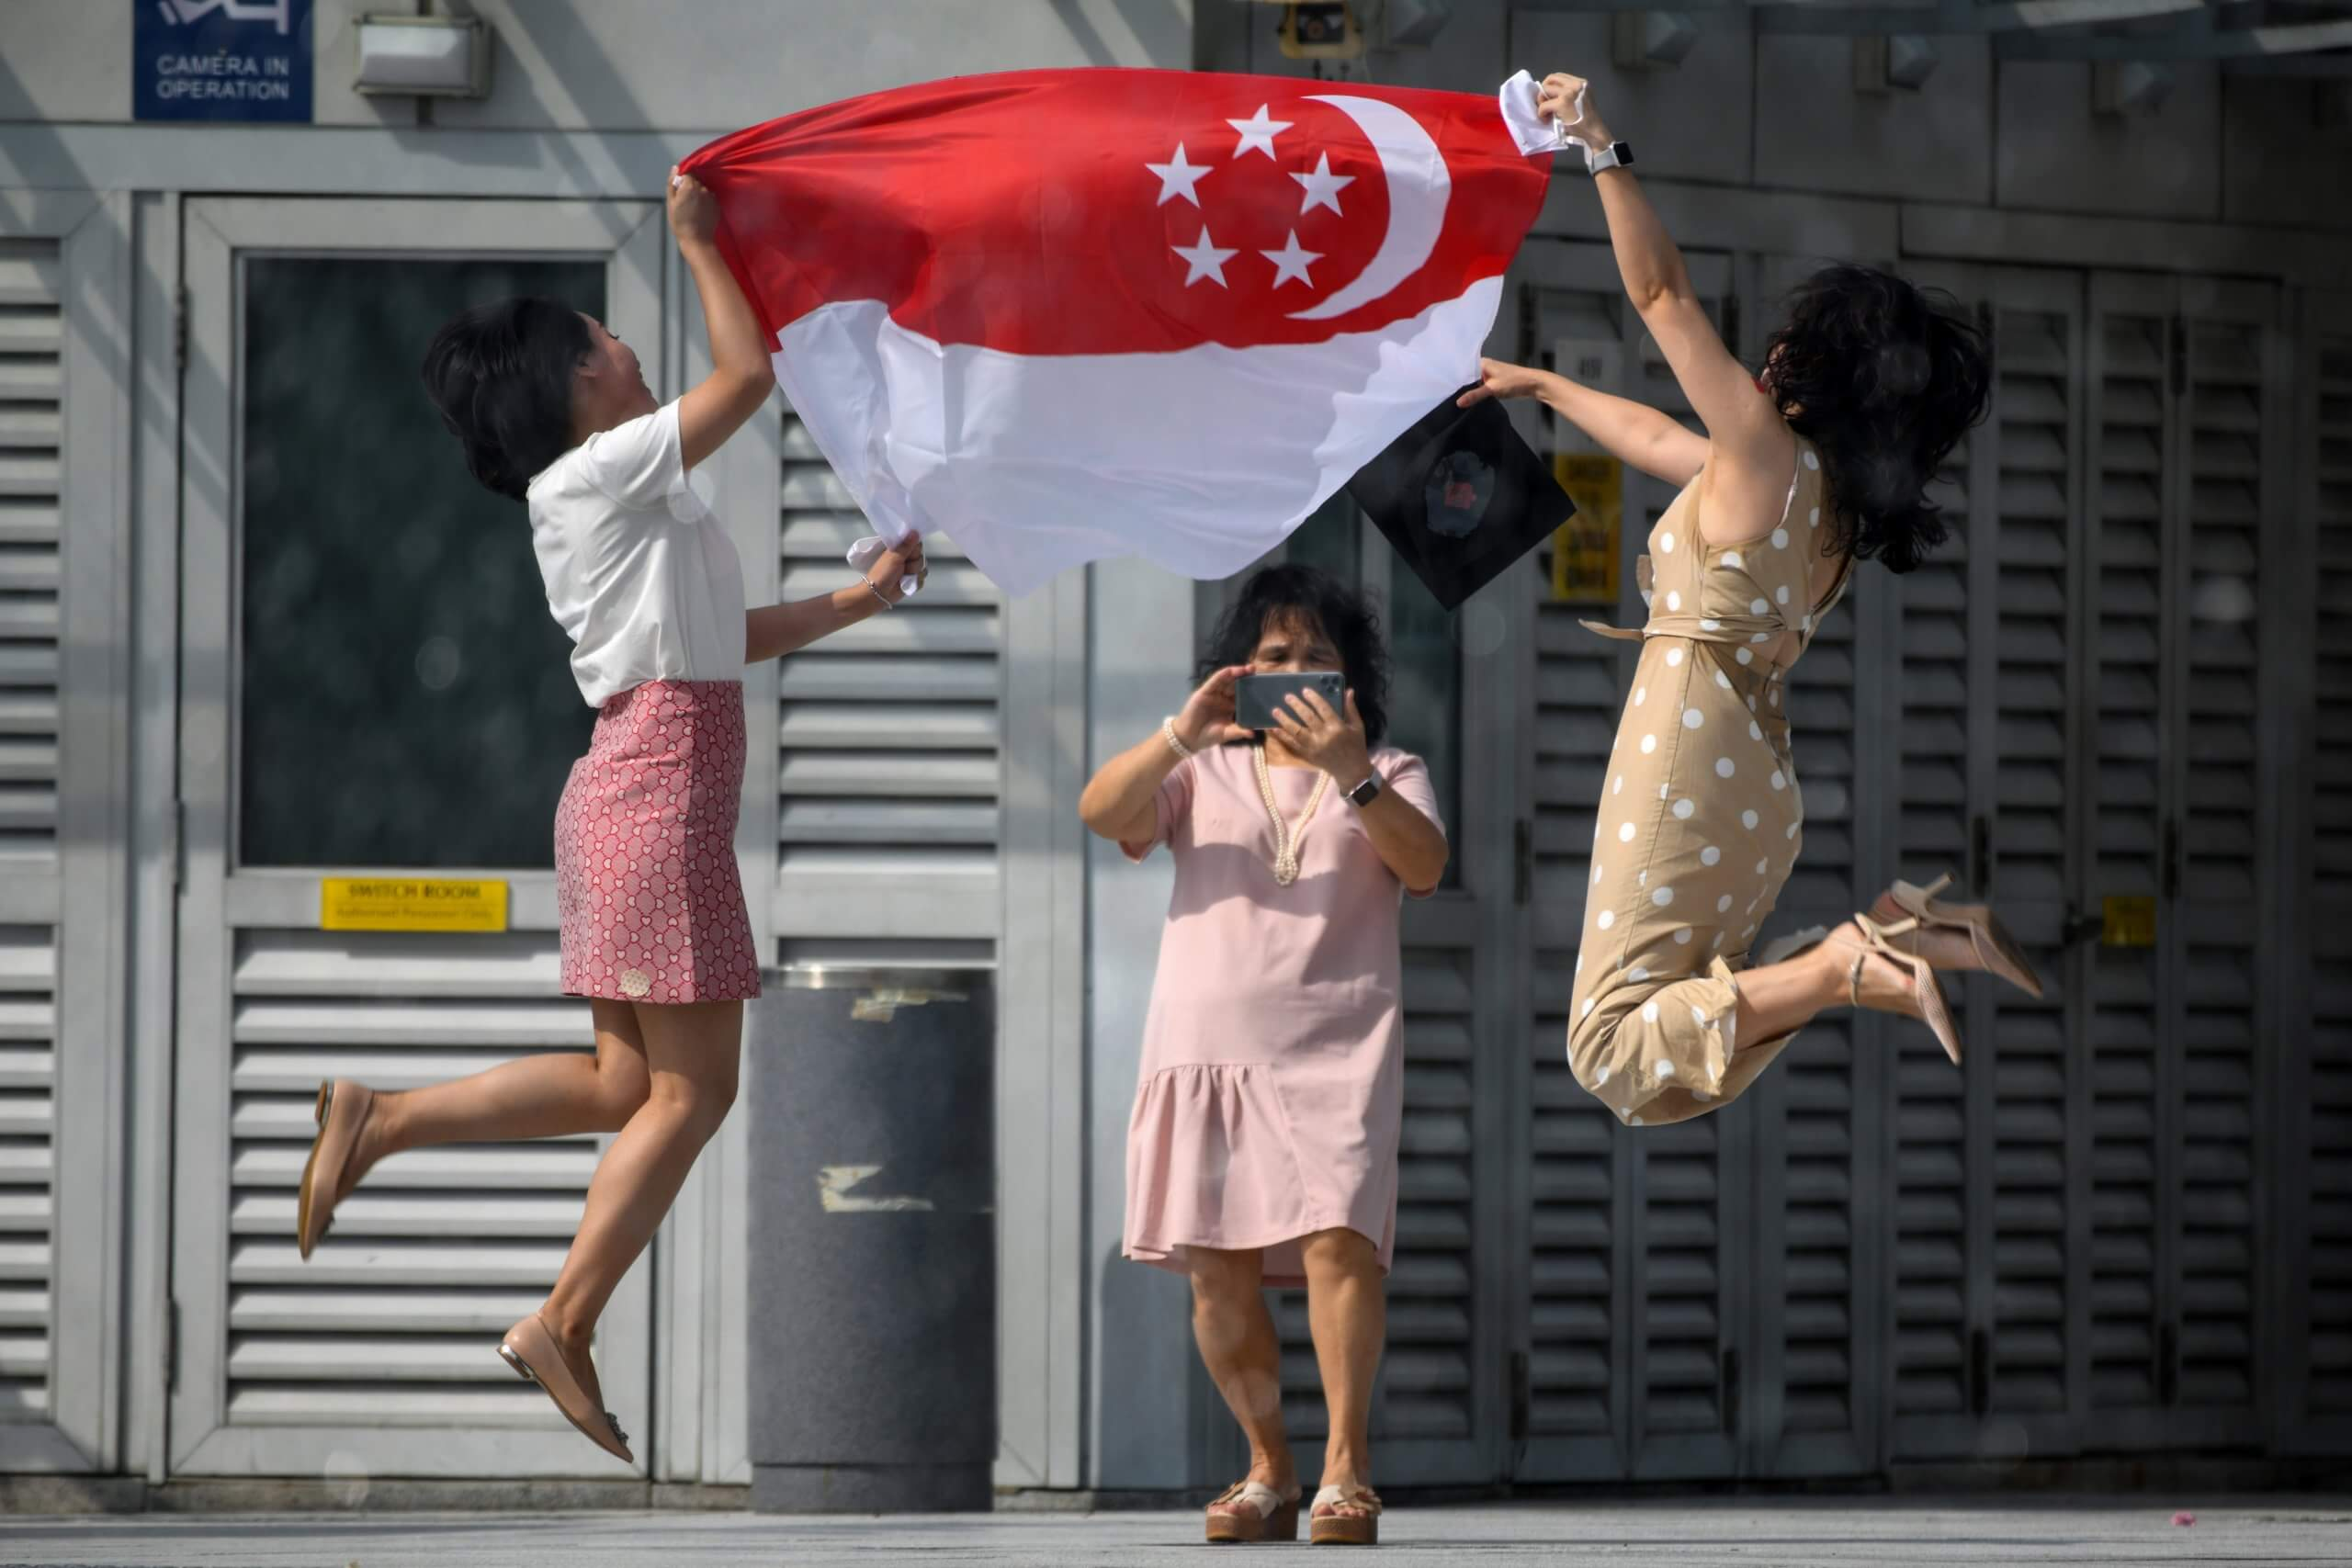 Singapore Student's Pass: What international students should know